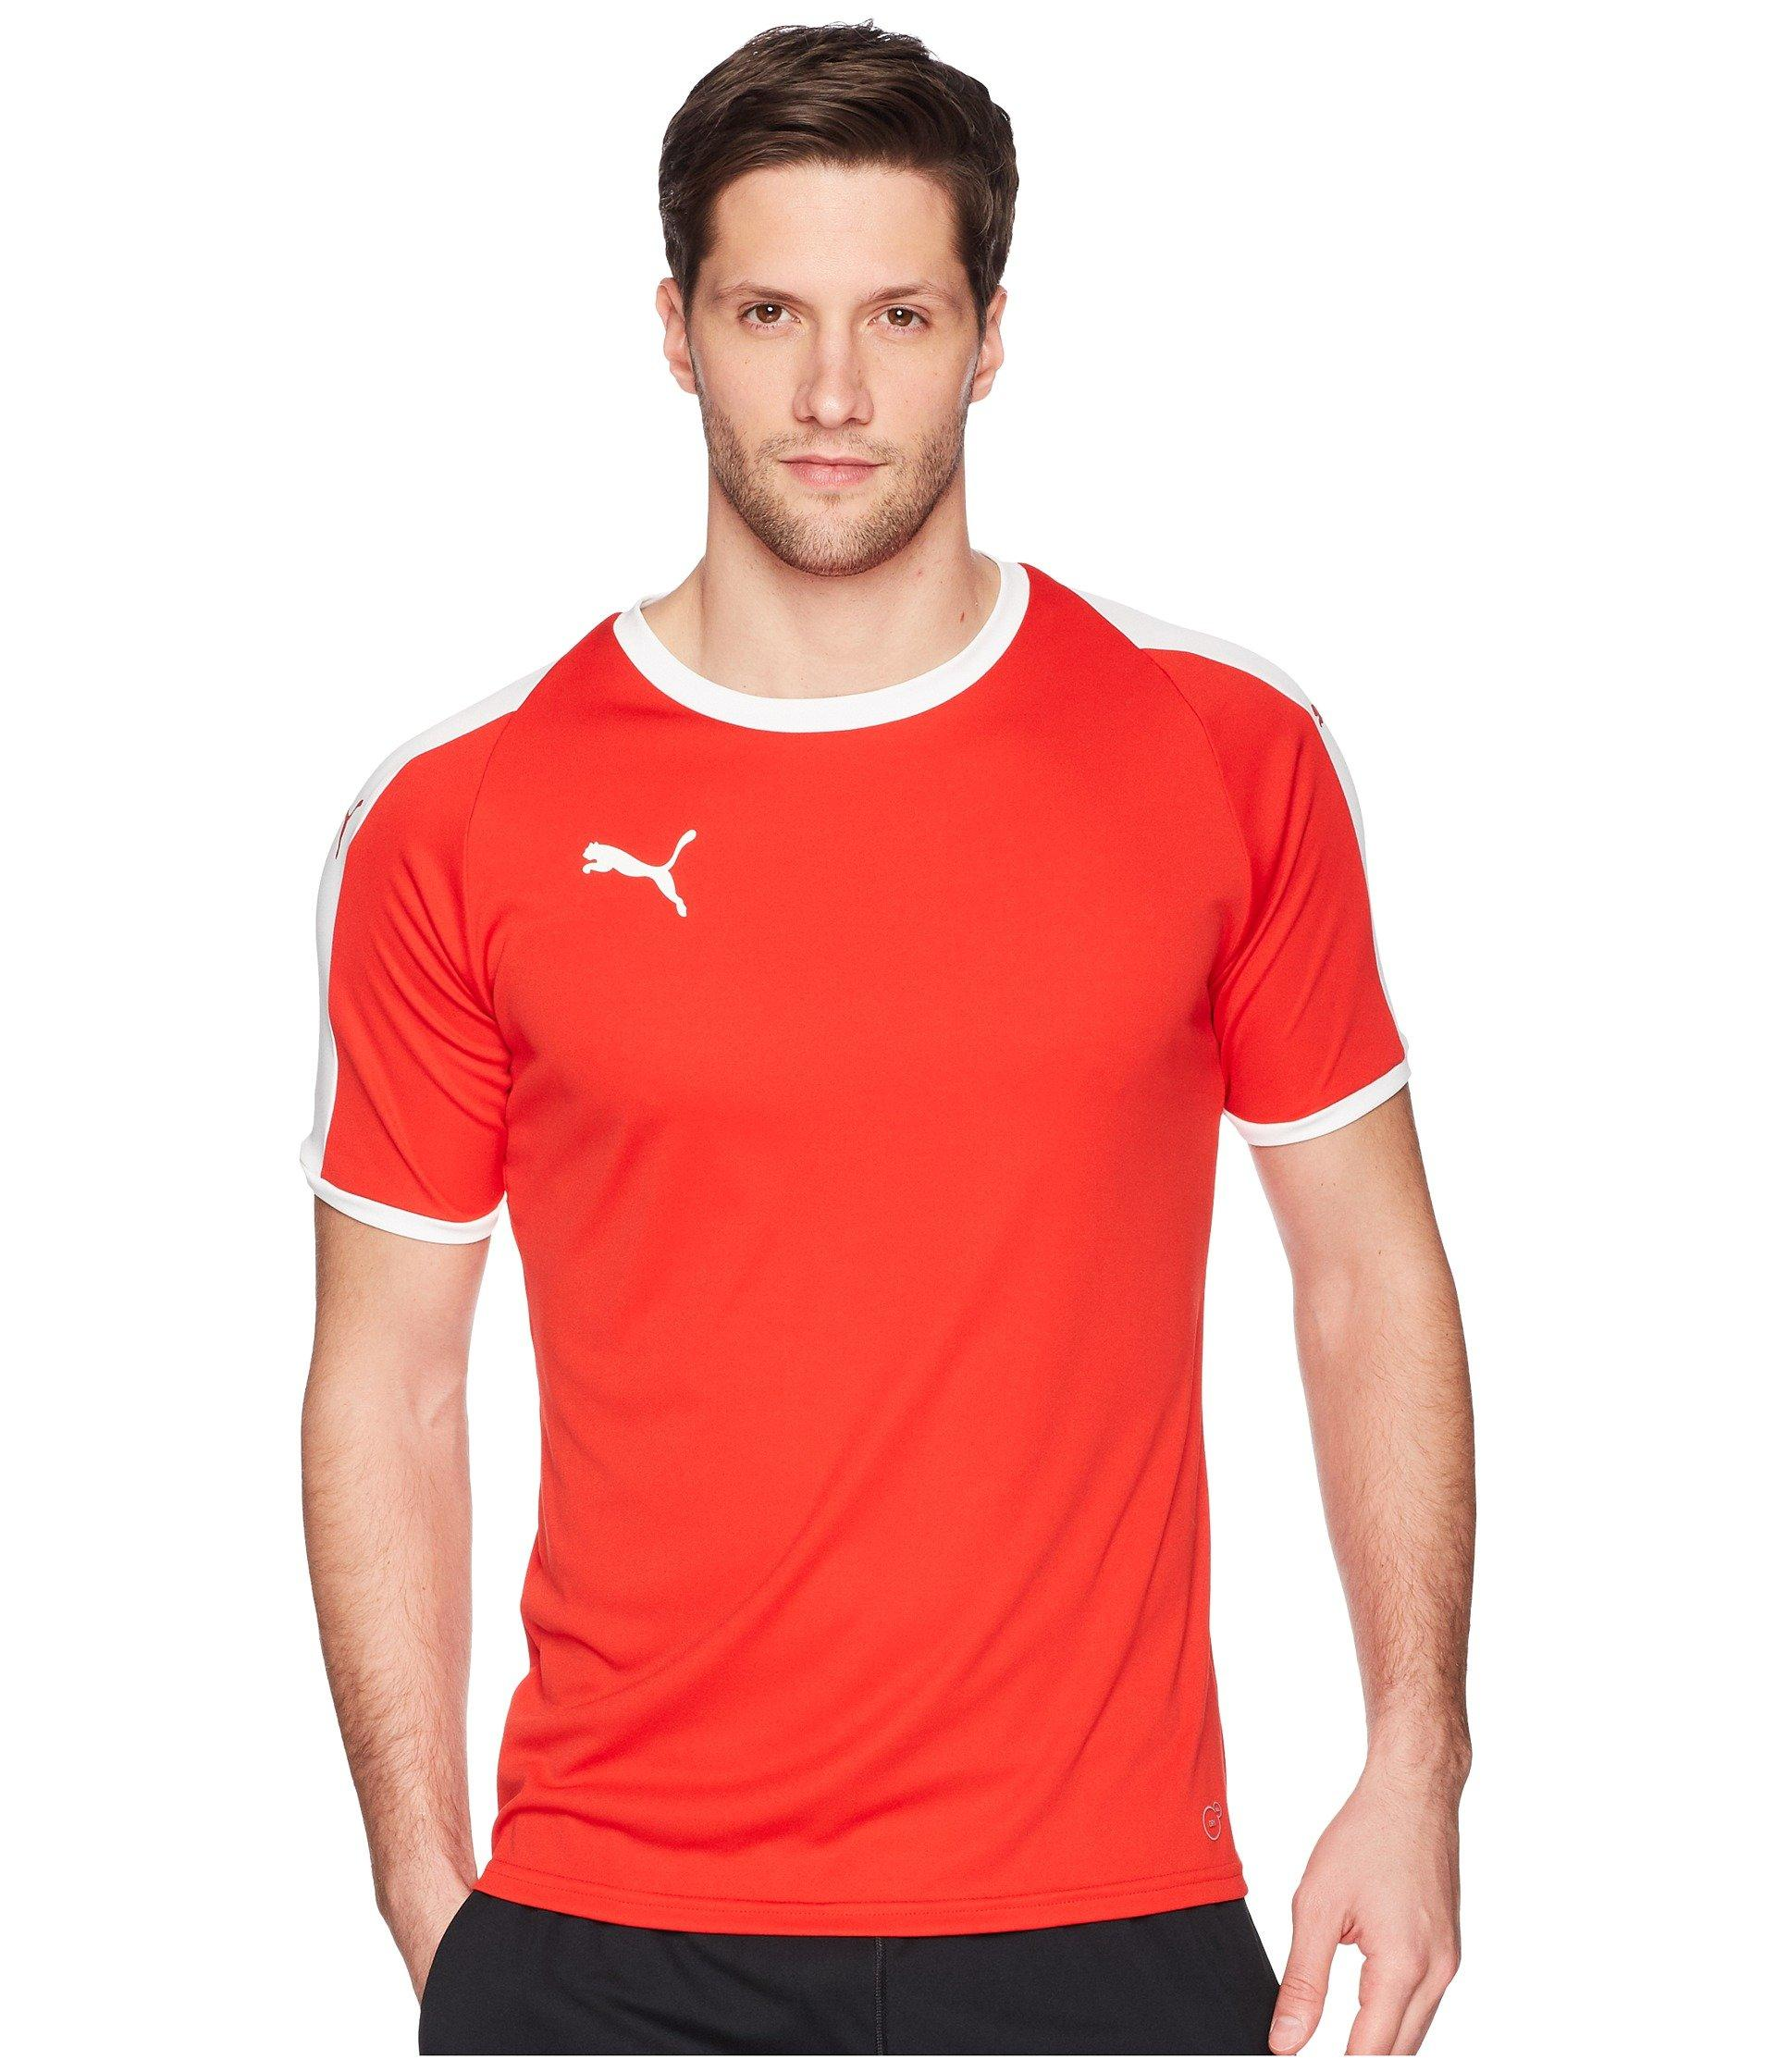 PUMA Synthetic Liga Jersey in Red/White (Red) for Men - Save 61 ...